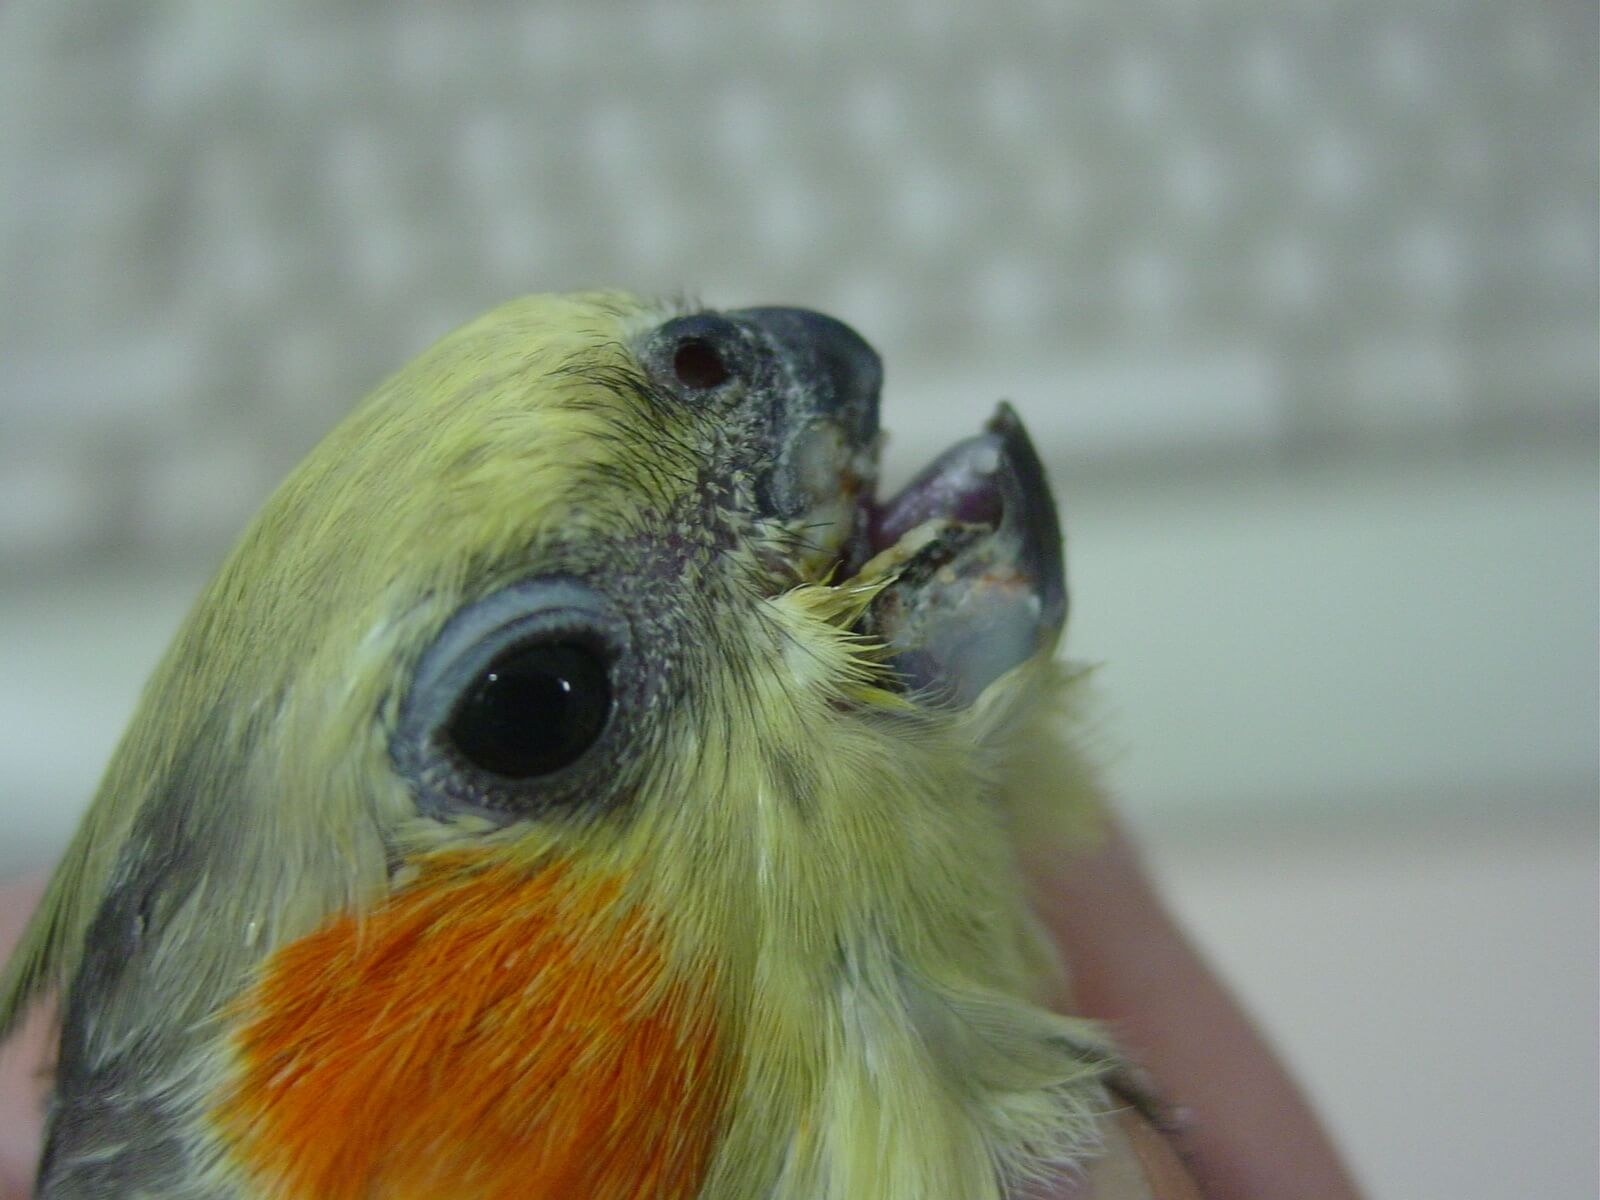 bird vet beak repair